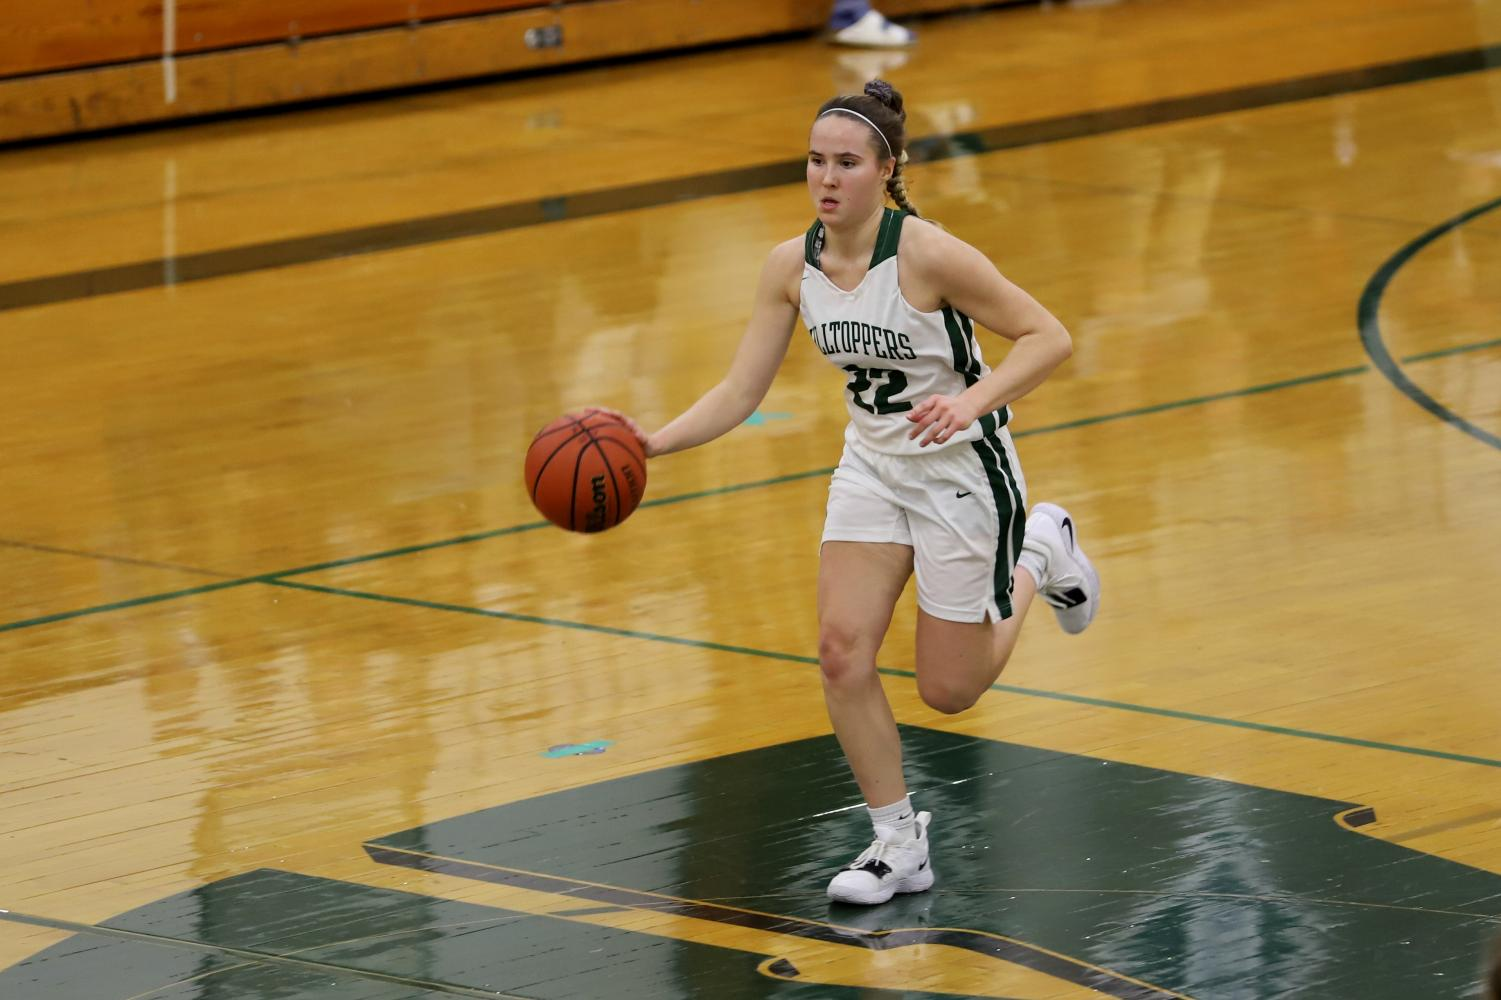 Point+Guard+Katelyn+Heller+%28senior%29+offensively+carries+the+ball+down+the+court.